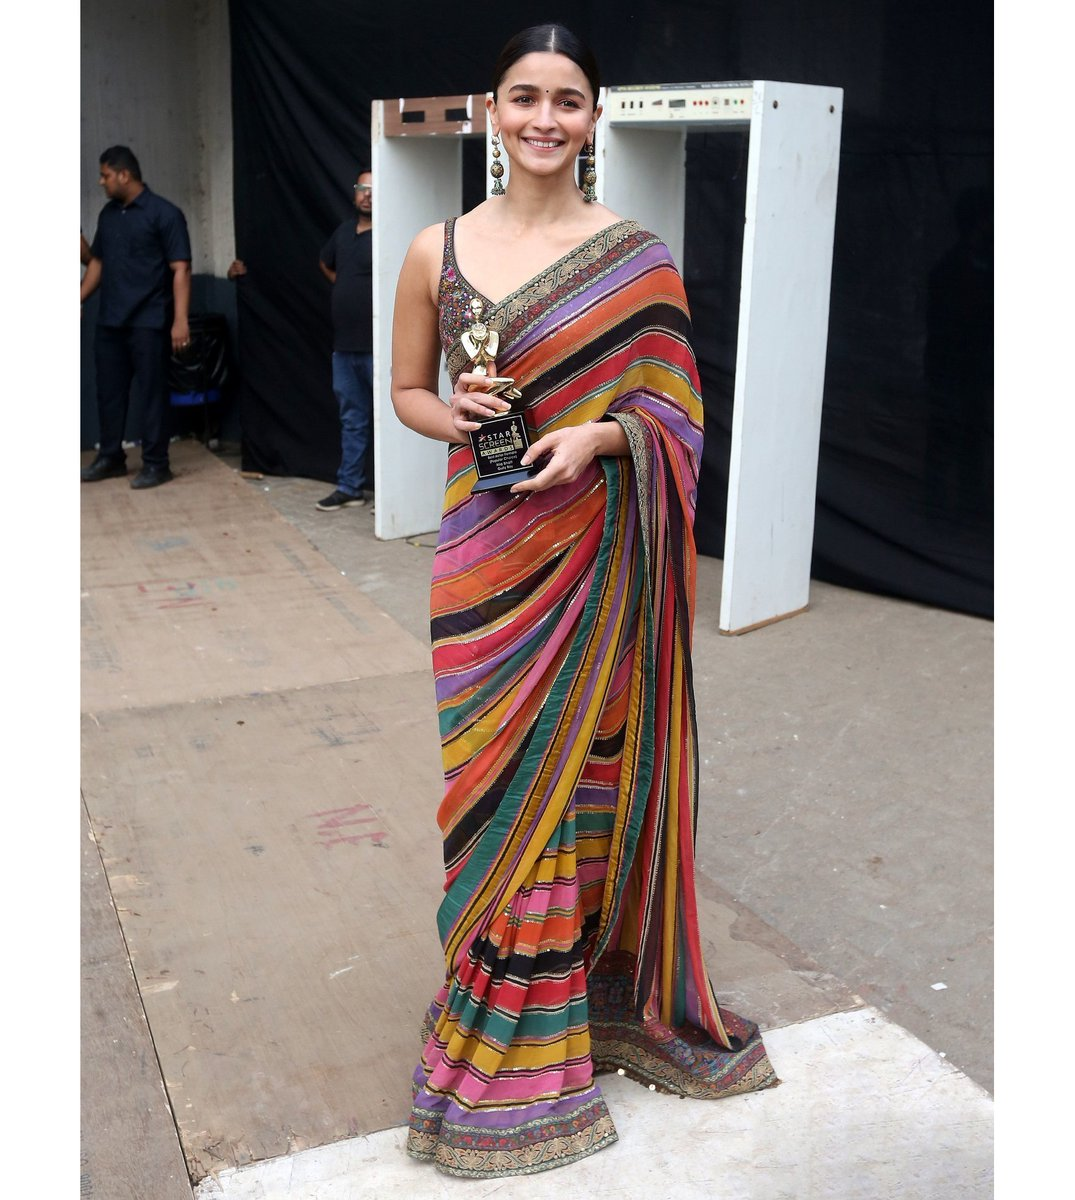 Ranjna On Twitter Alia Bhatt In A Designer Saree At The Star Screen Awards 2019 Event Image Source Pinterest Aliabhatt Designersaree Designersari Starscreenawards Sari Saree Starscreenawards2019 Contemporarysaree Indianethnicwear